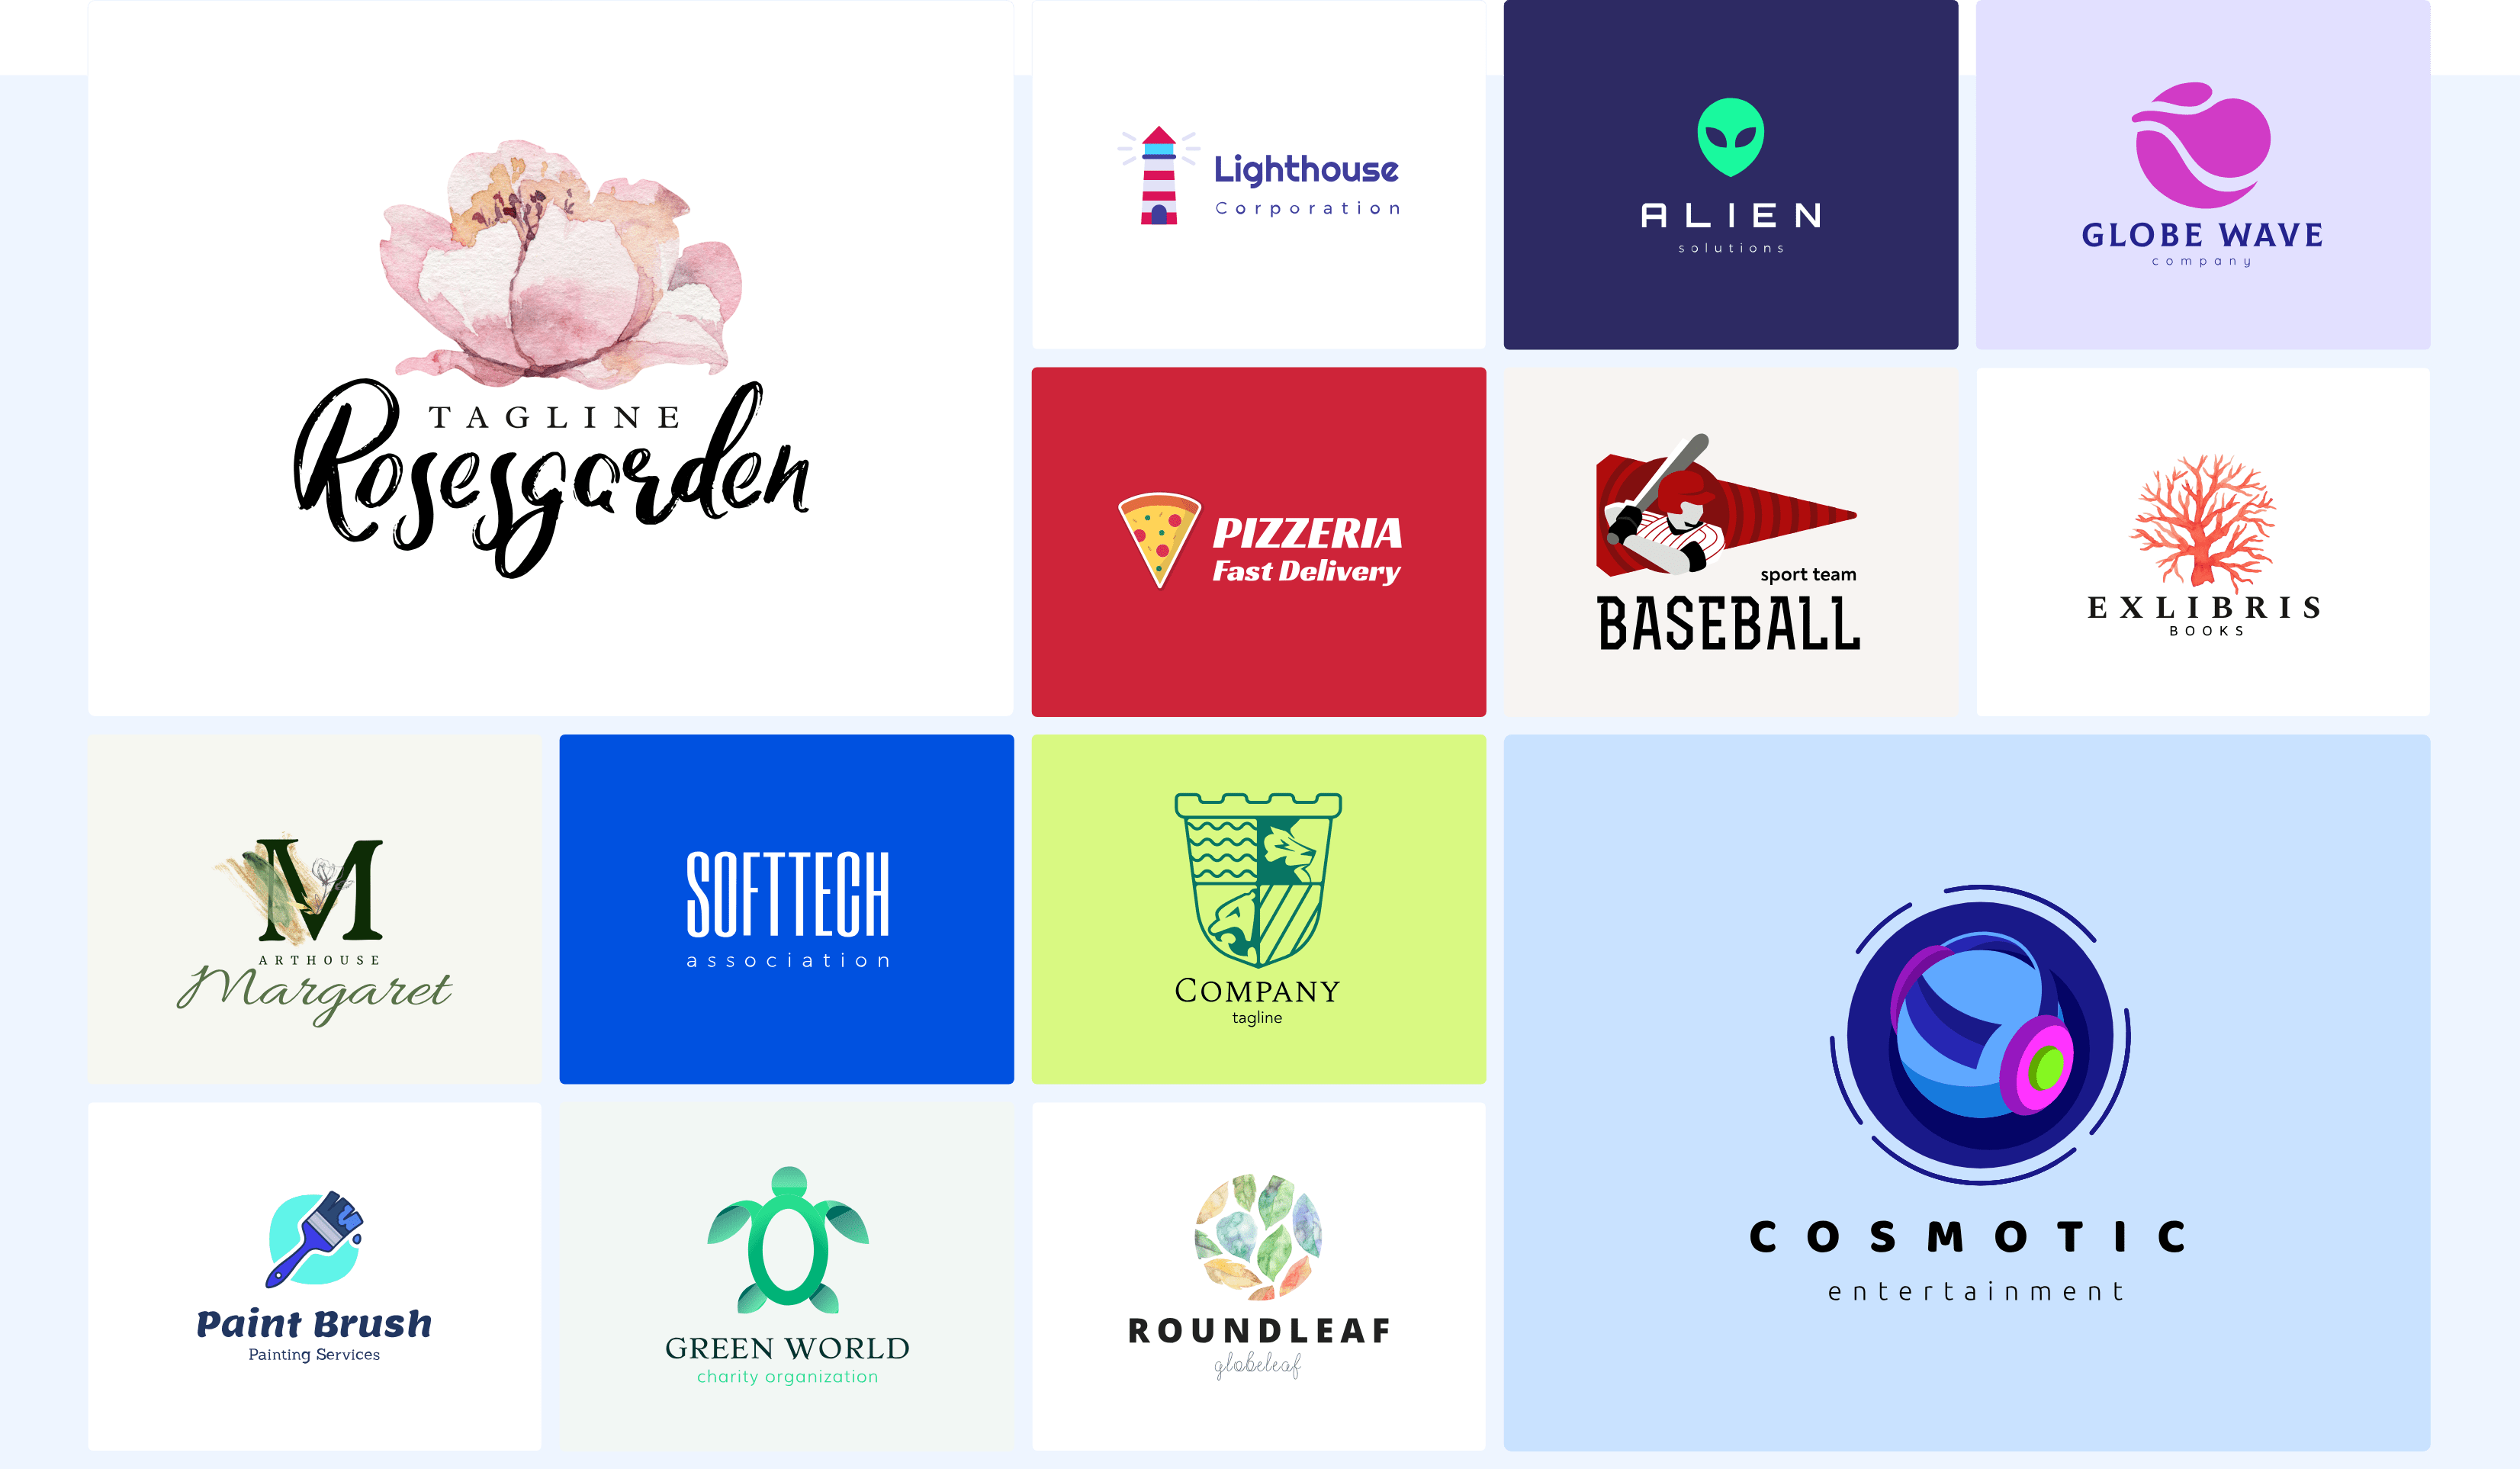 Logos created by Renderforest